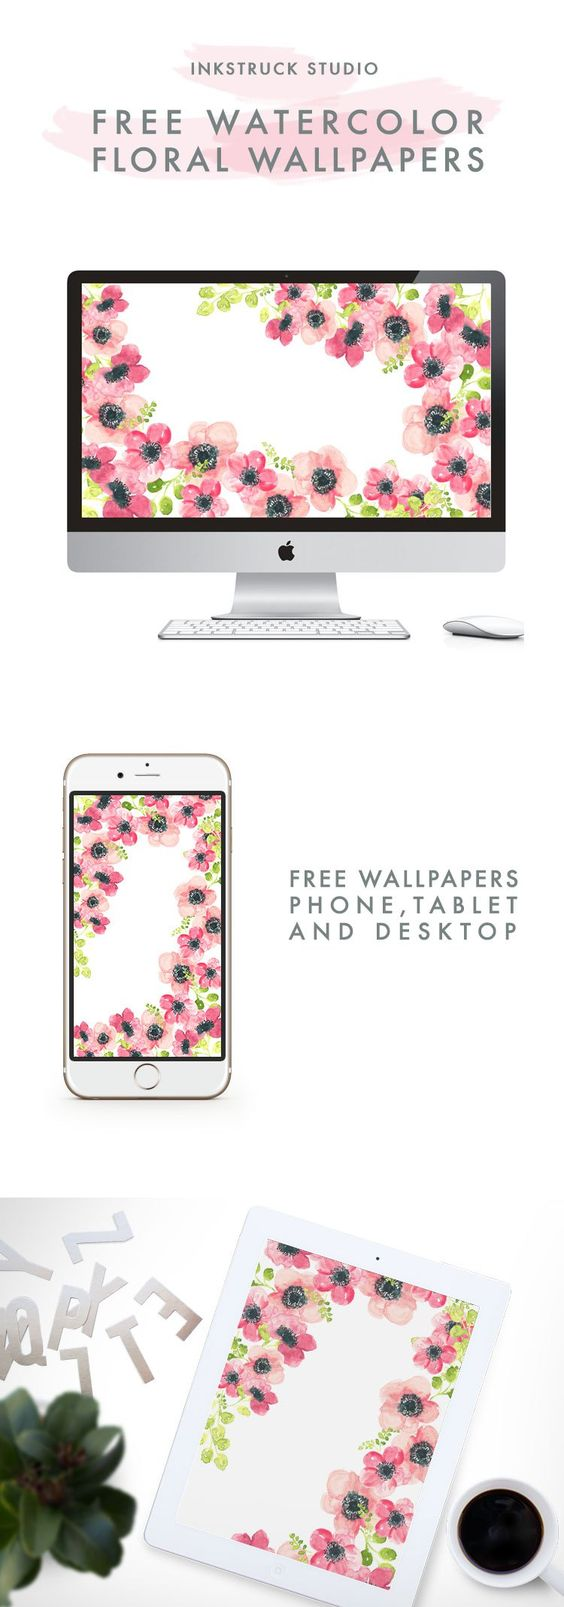 Free-watercolor-floral-to-pretty-up-your-desktop-phone-and-tablet-Zakkiya-Hamza-Inkstr-wallpaper-wp5206793